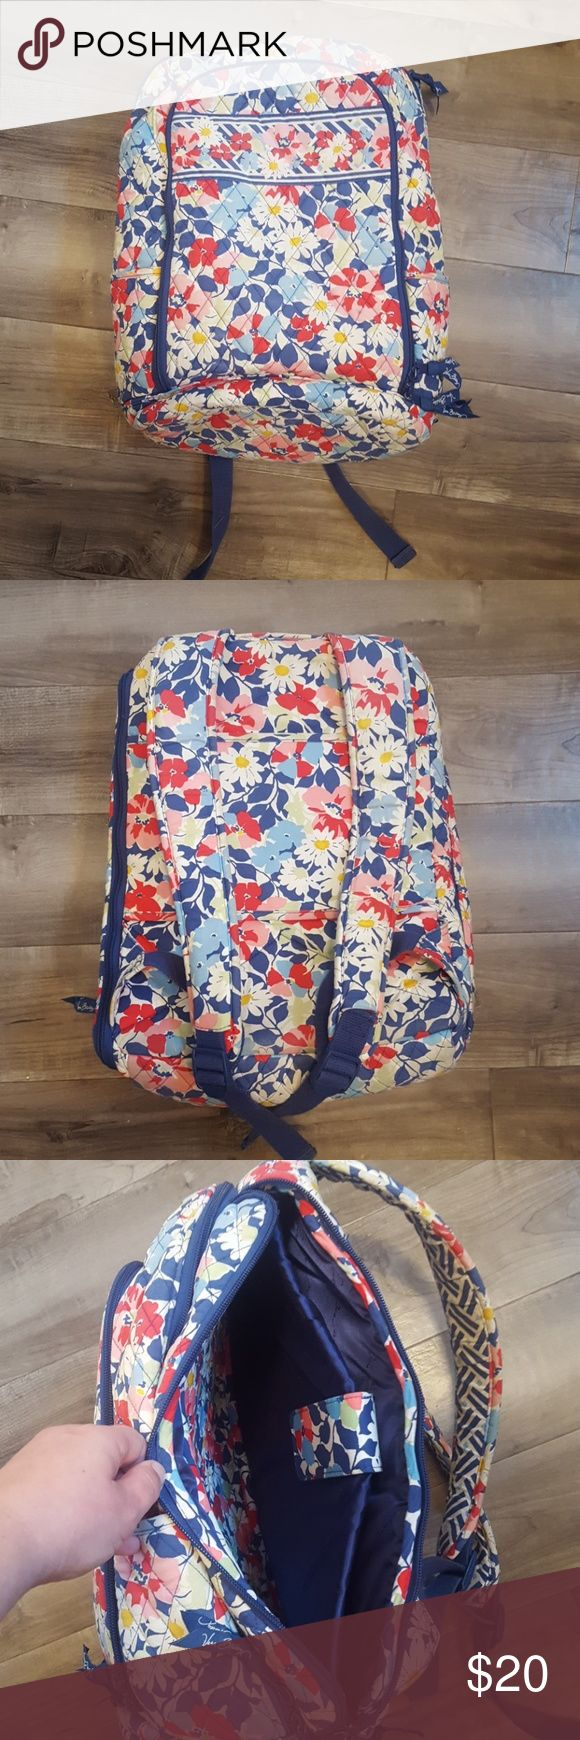 Vera Bradley laptop backpack Vera Bradley laptop backpack. Held my 17 inch laptop. Slightly dirty on bottom and front (have not tried to wash). Some wear on the bottom back of bag and small tear by strap adjuster (shown in pics). Vera Bradley Bags Laptop Bags